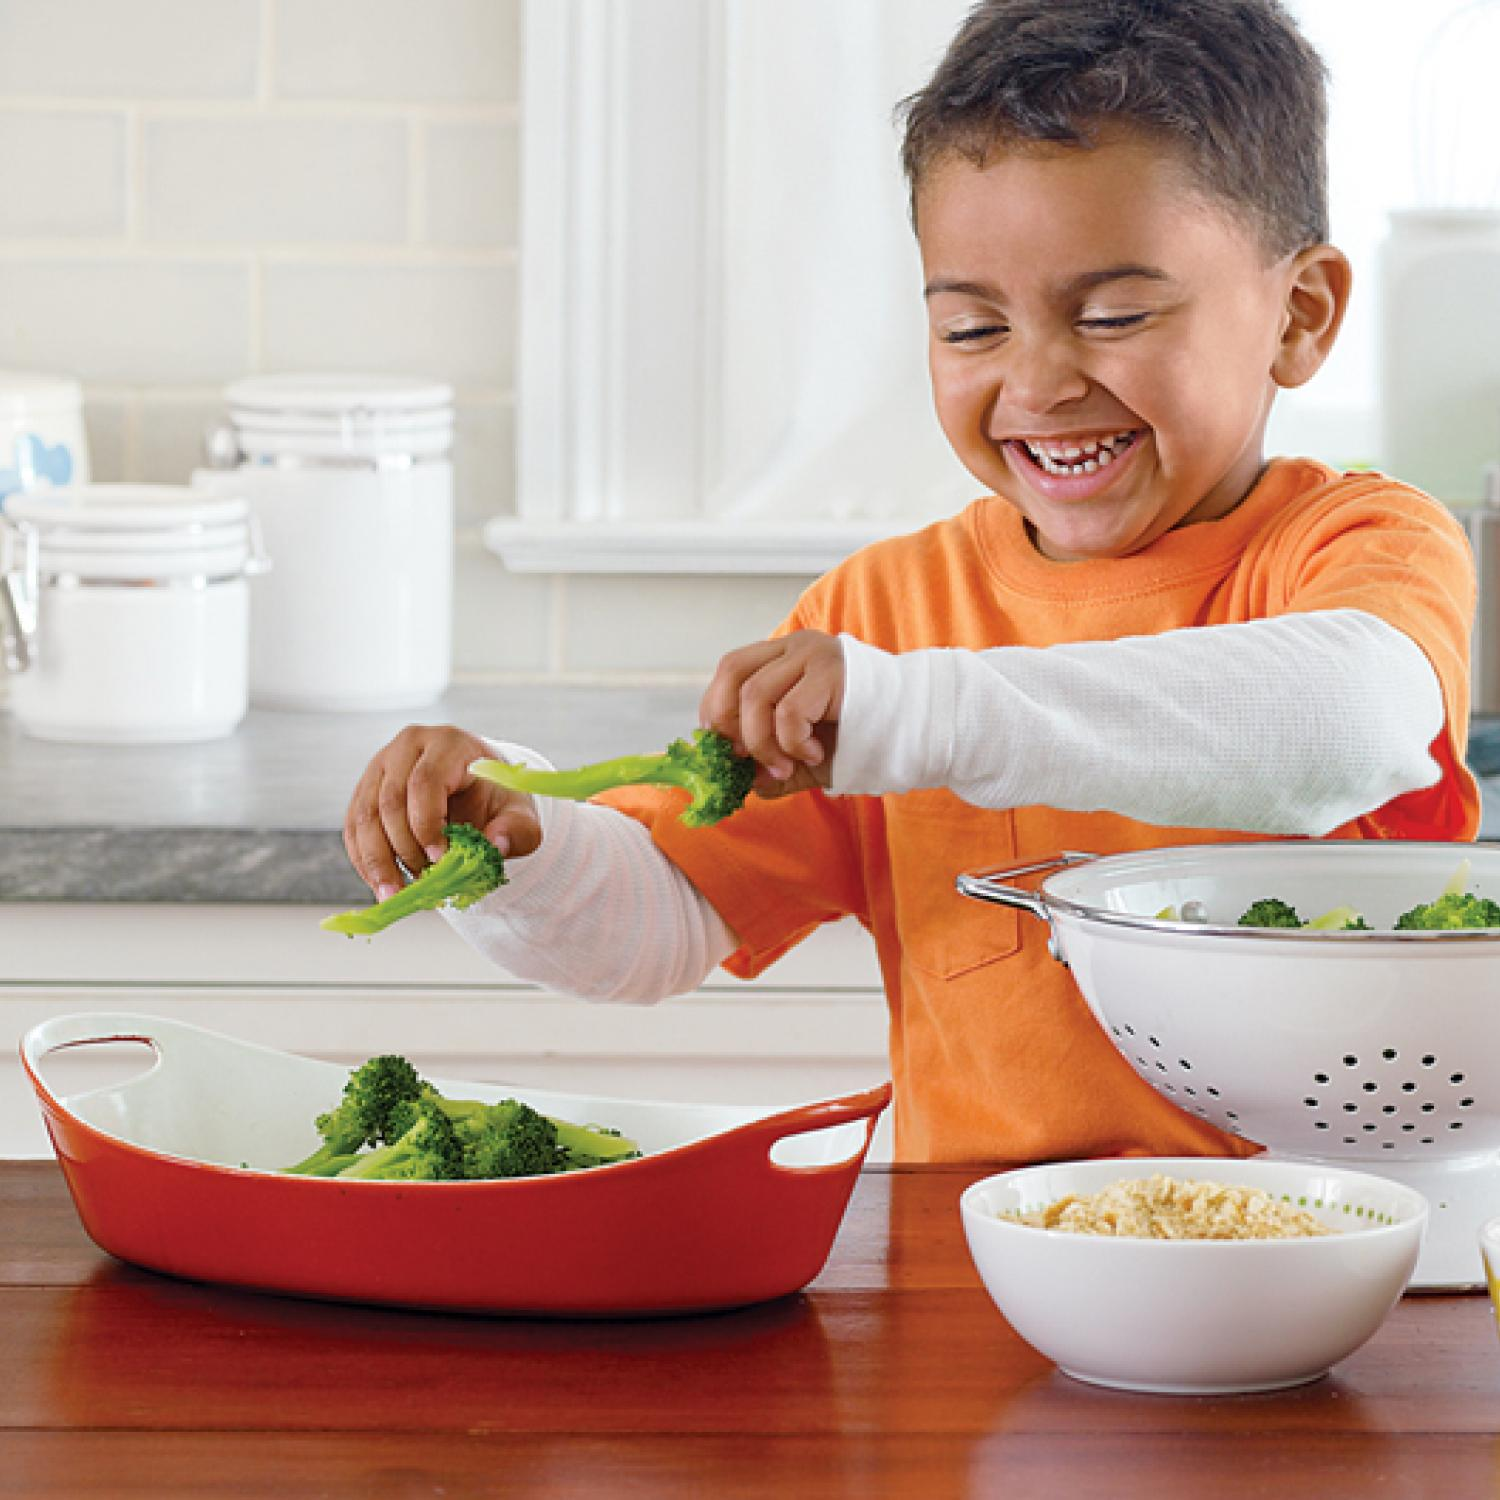 Easy Things To Cook At Home For Kids